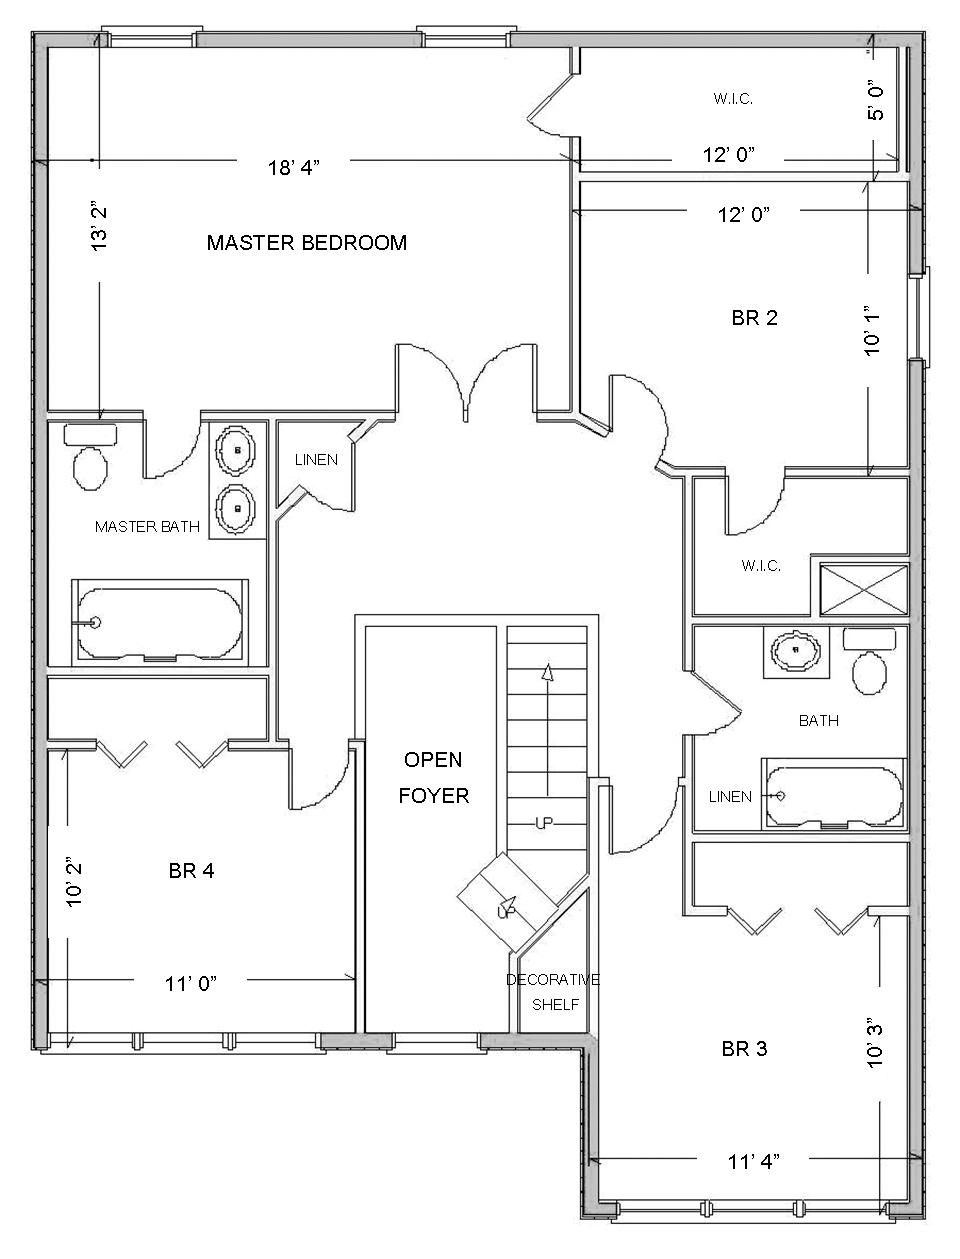 charleston level 1 floor plan free house floor plans and designs floor plan free friv